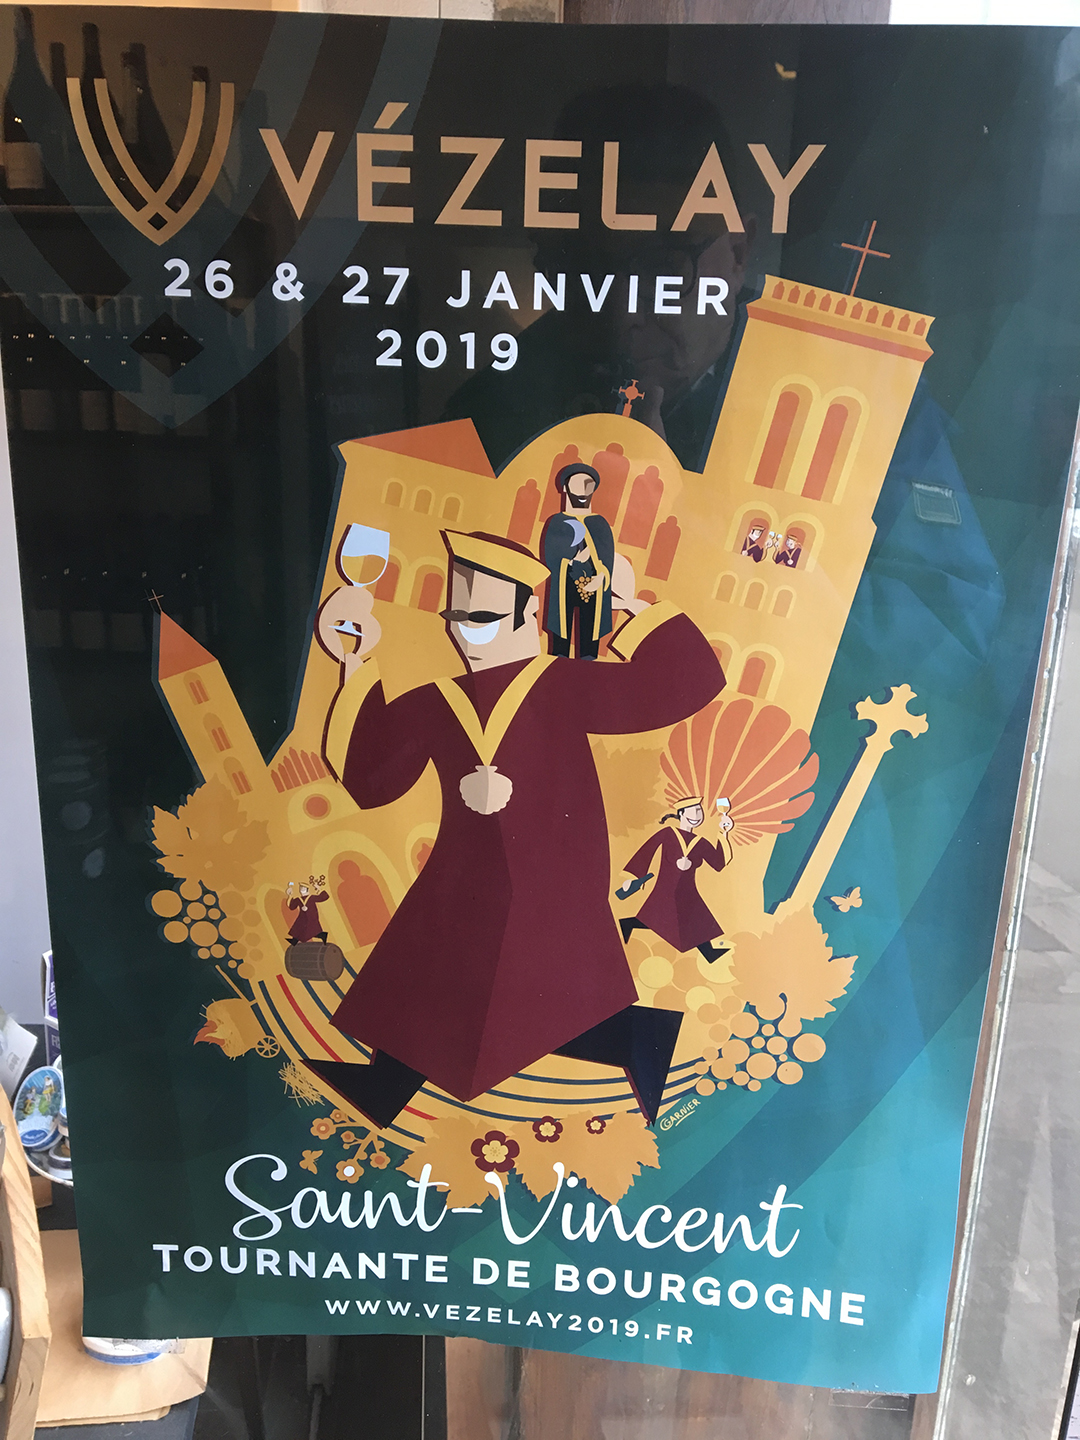 Poster for Saint-Vencent Tournante de Bourgogne, Vézelay, 26 & 27 janvier 2019